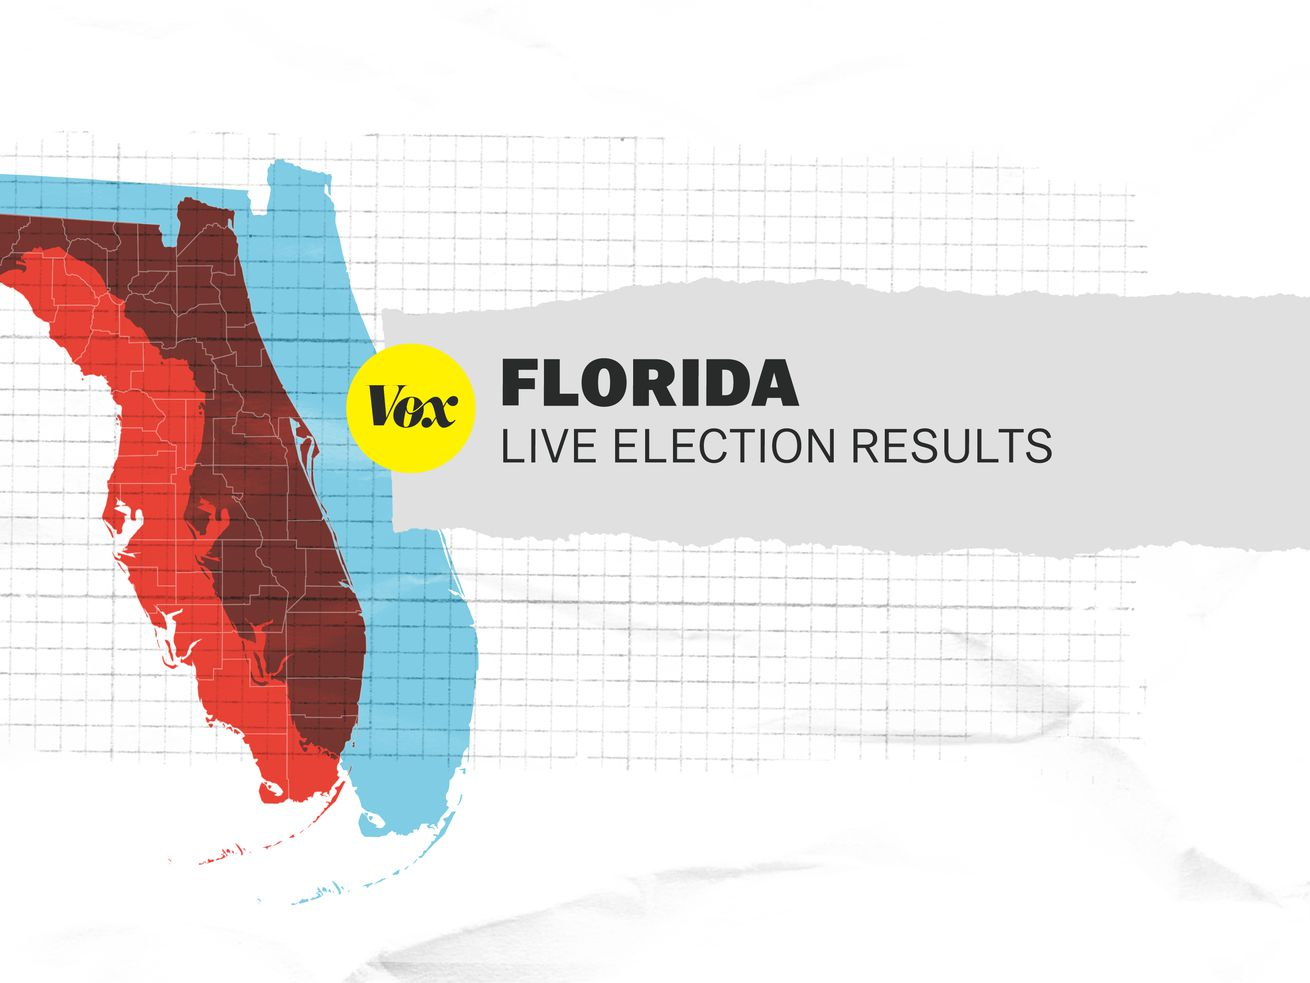 Florida Live Election Results